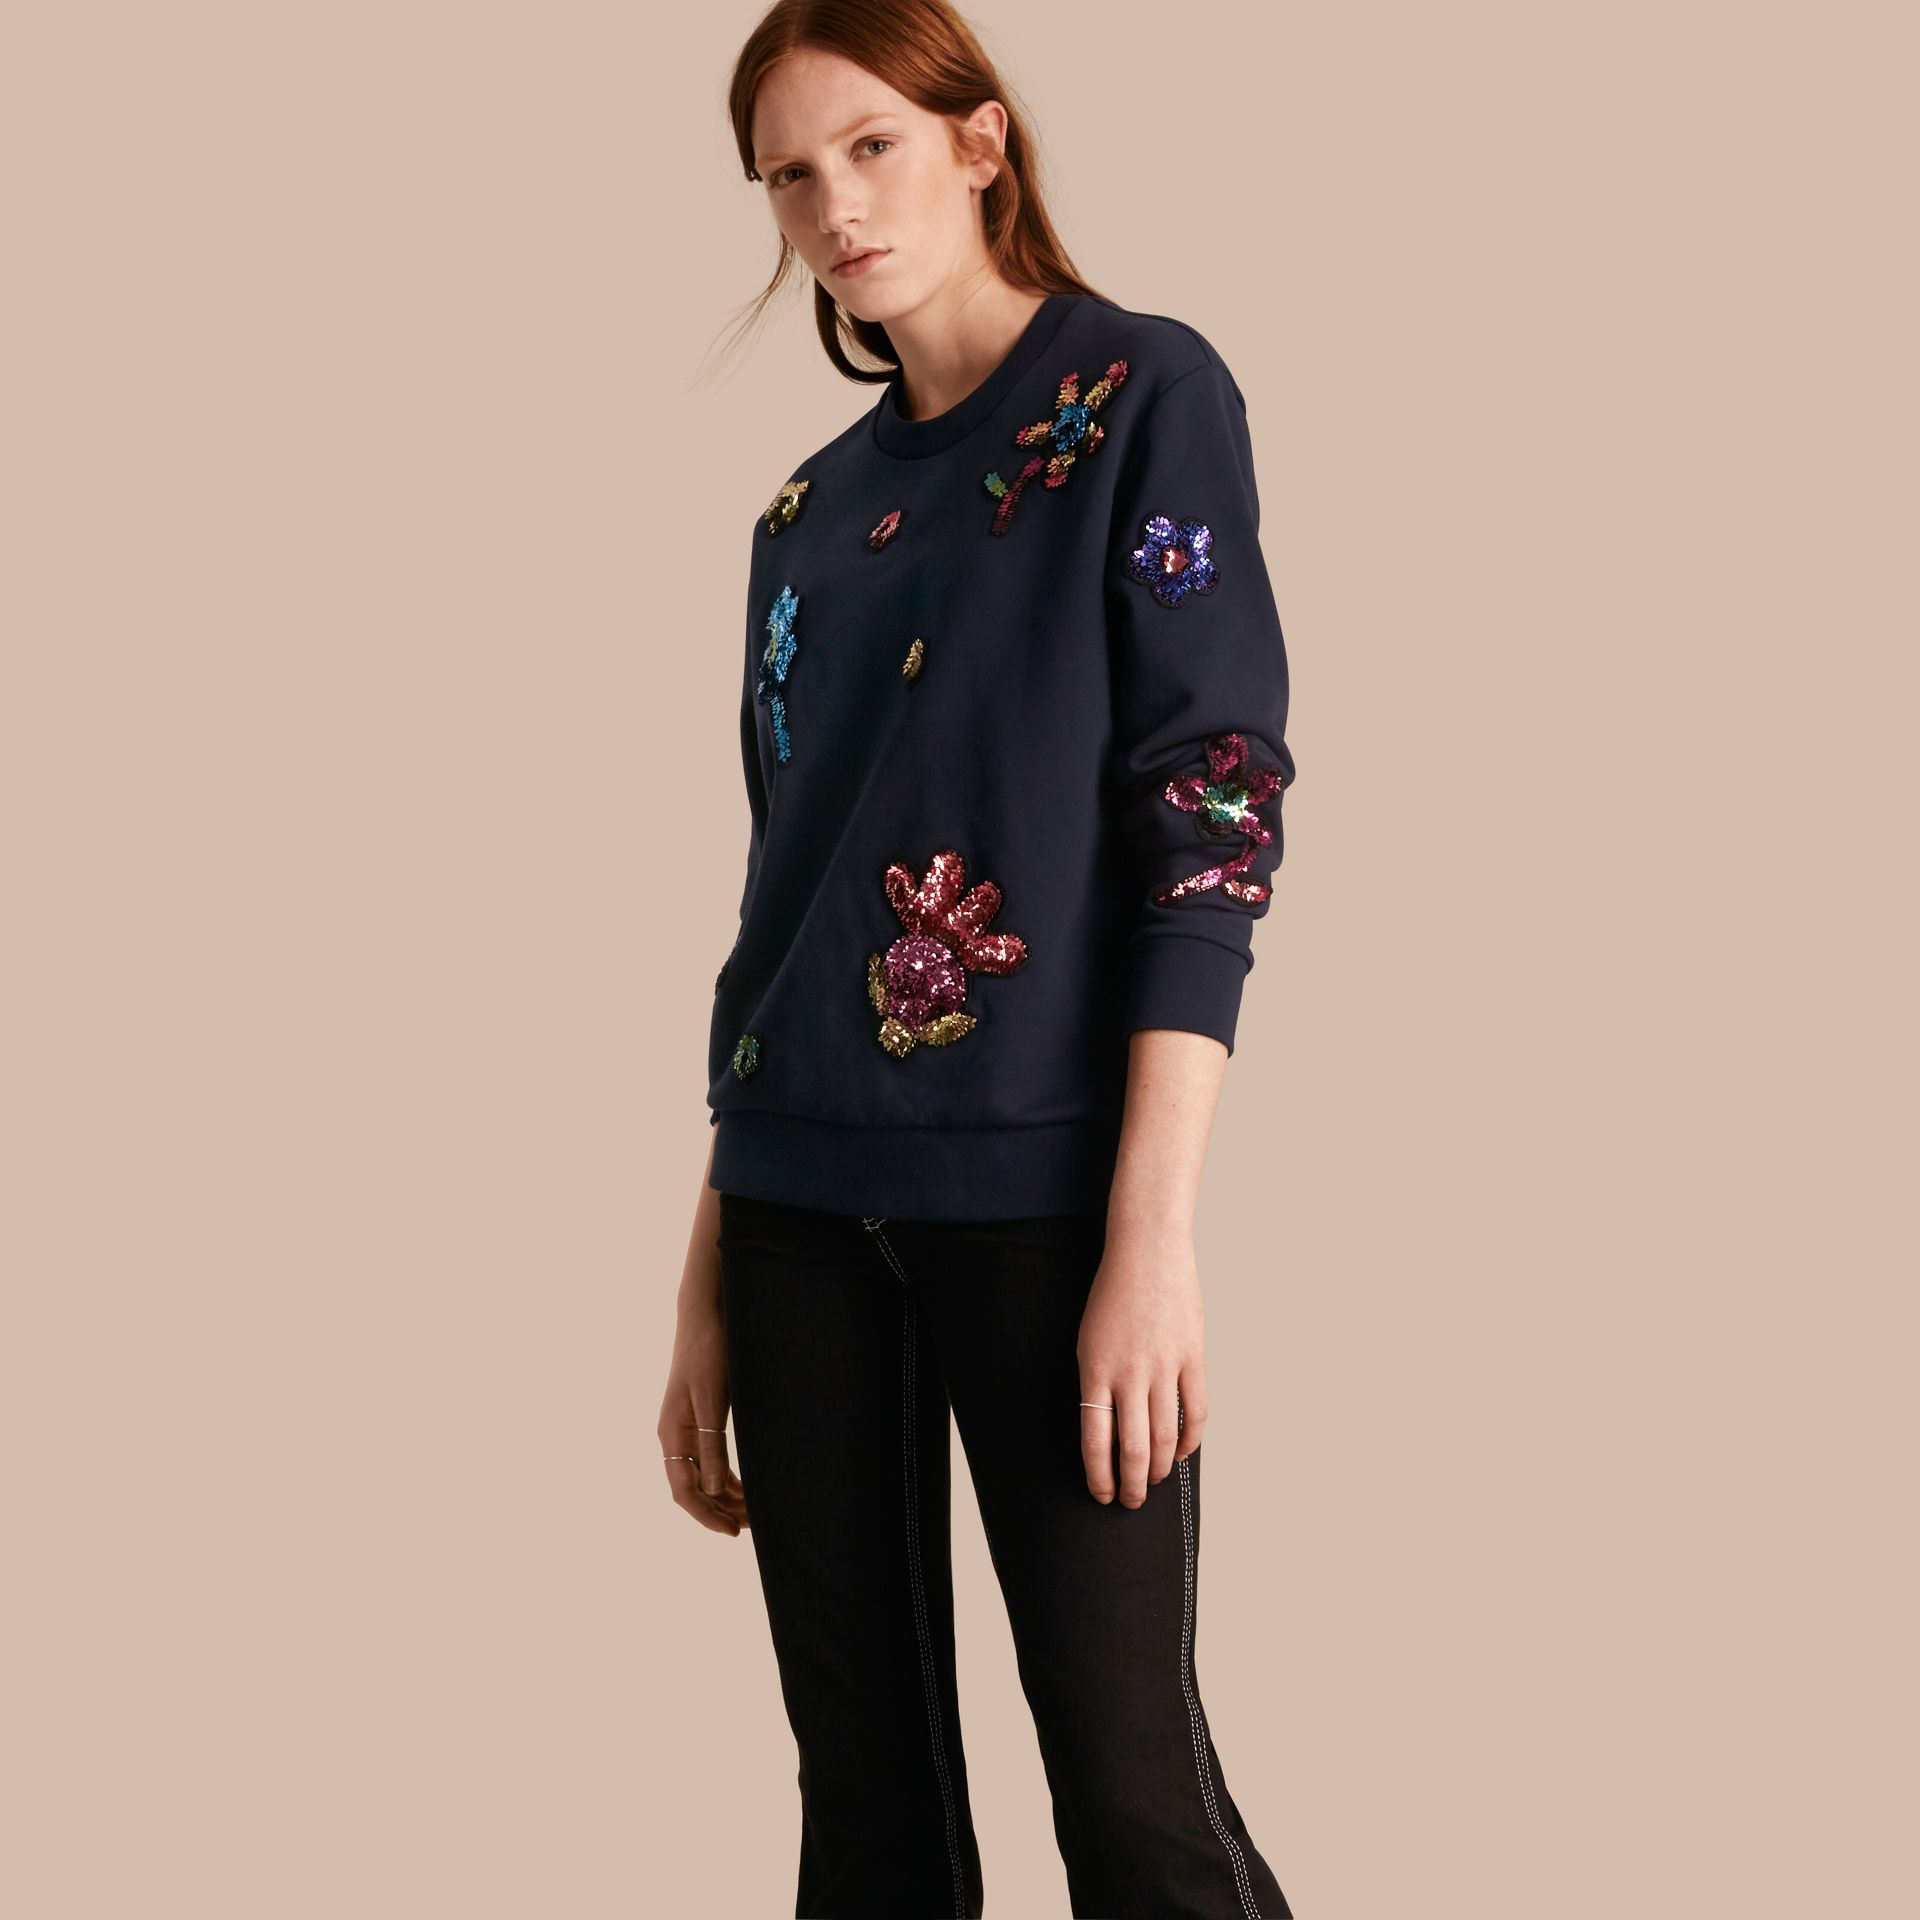 Navy Sequin Floral Appliqué Cotton Sweatshirt - gallery image 1